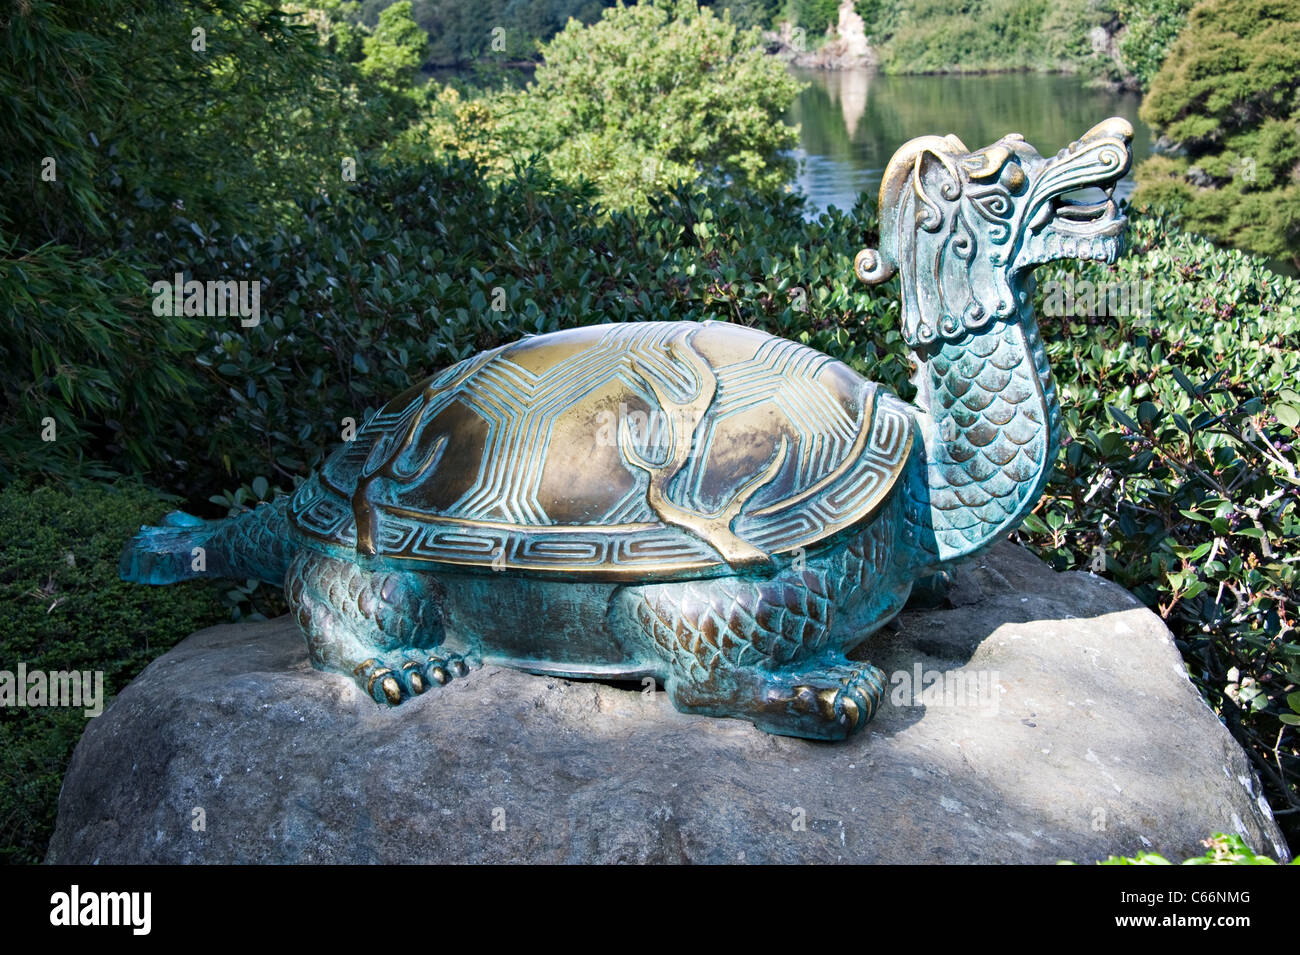 Bronze Sculpture Celestial Yuan of Taihu in China Garden Hamilton Gardens Waikato North Island New Zealand - Stock Image